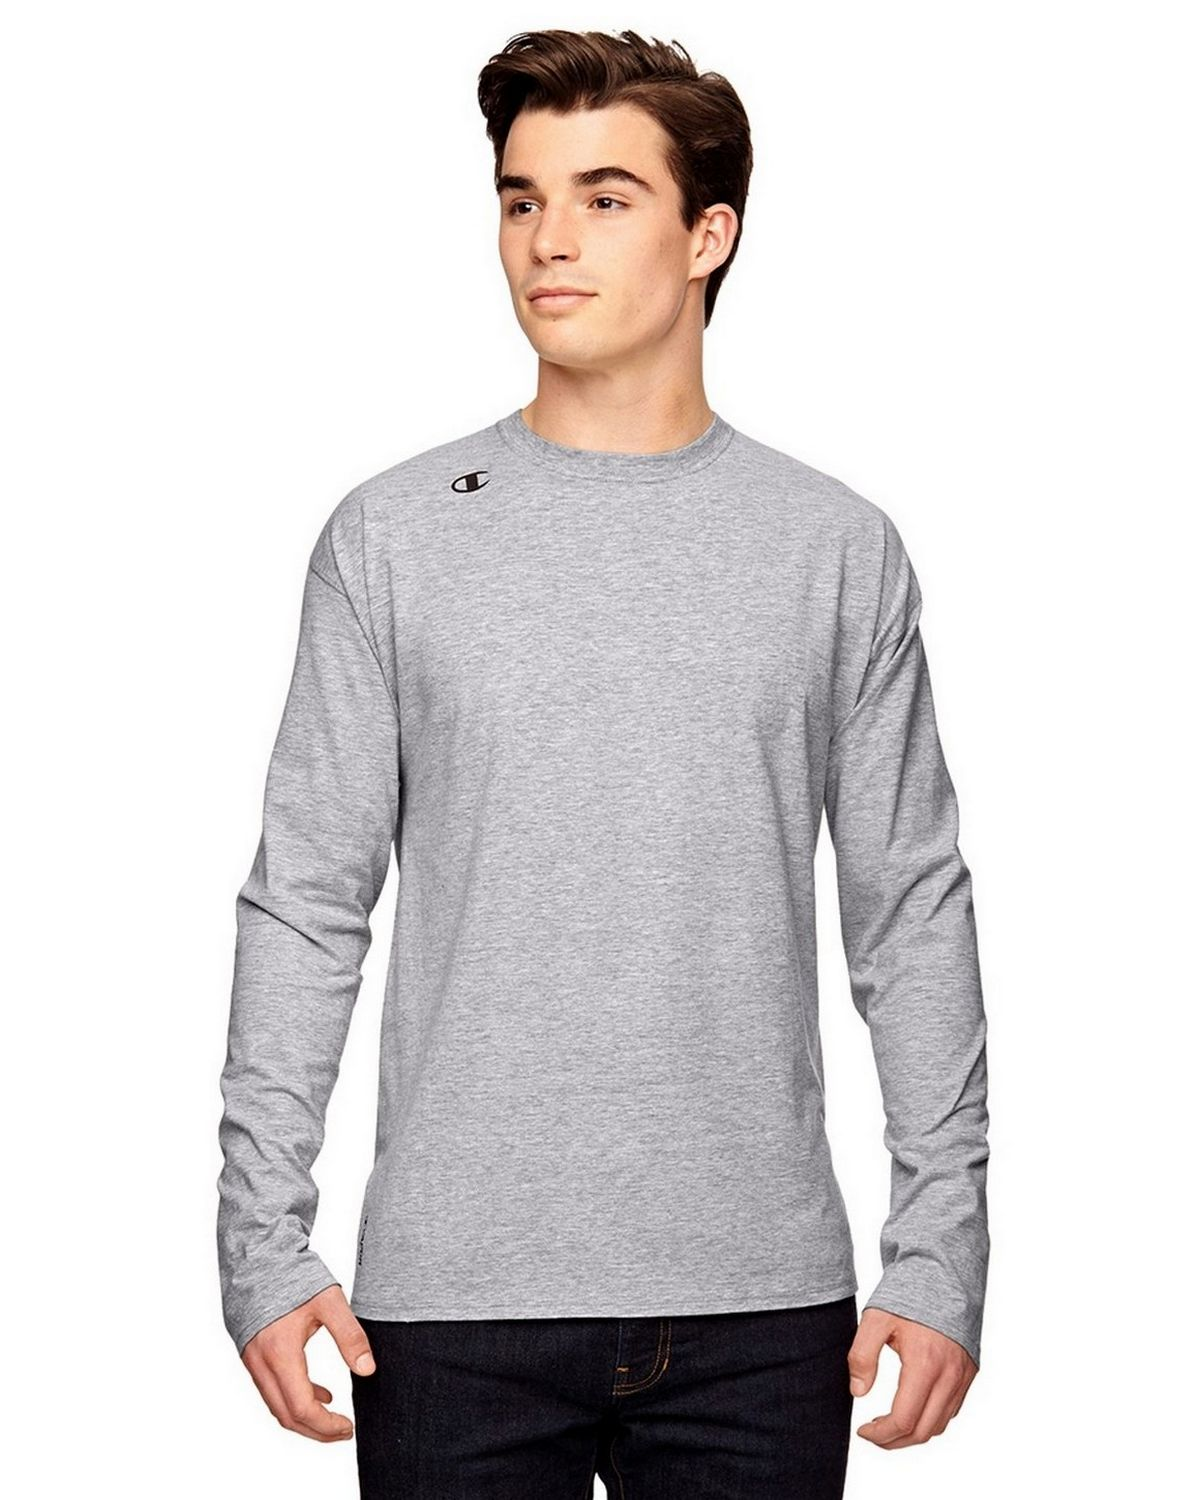 Champion T390 Vapor T-Shirt - Athletic Heather - M T390